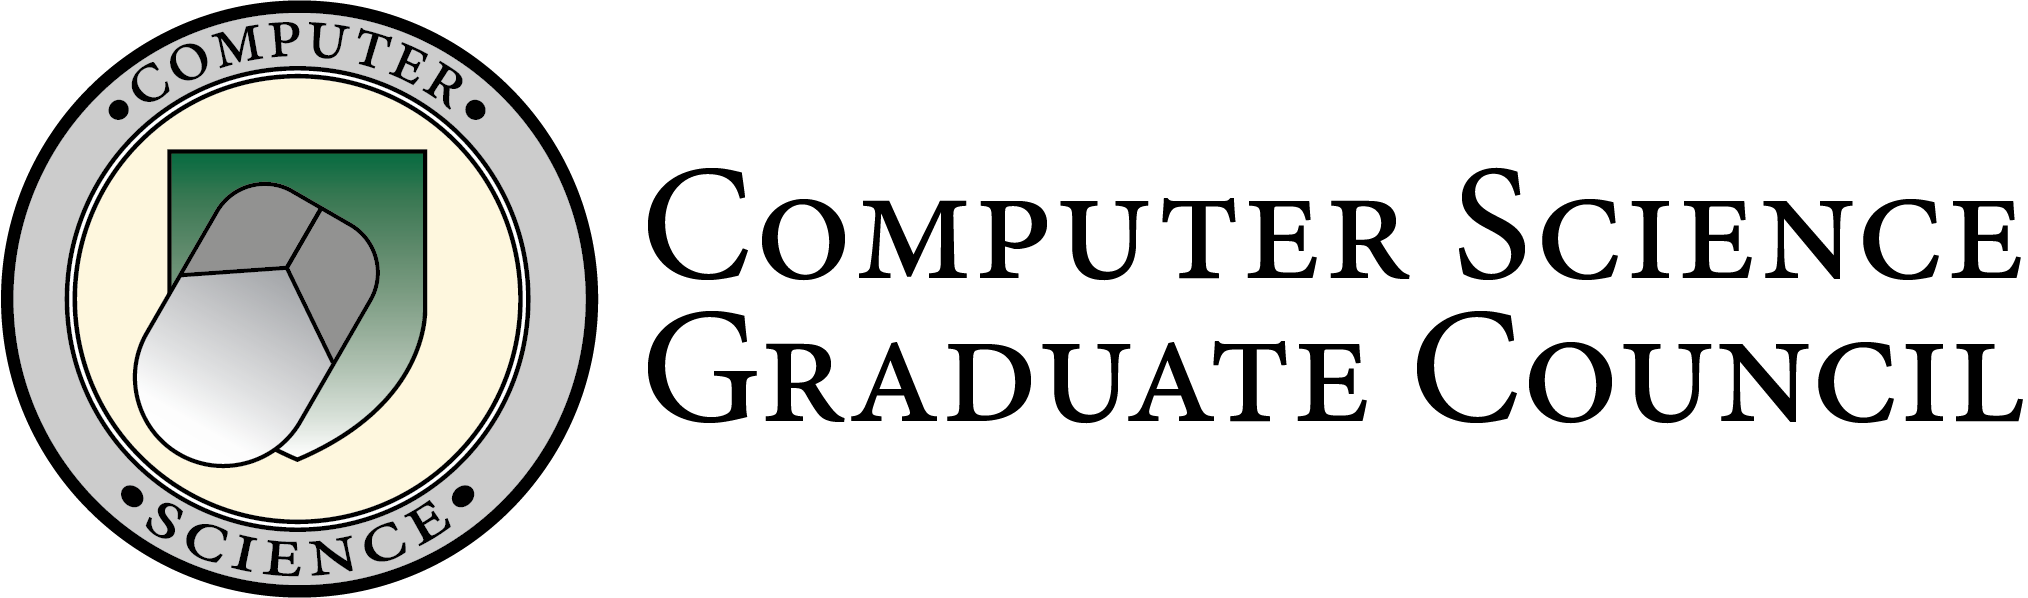 Computer Science Graduate Council (CSGC)